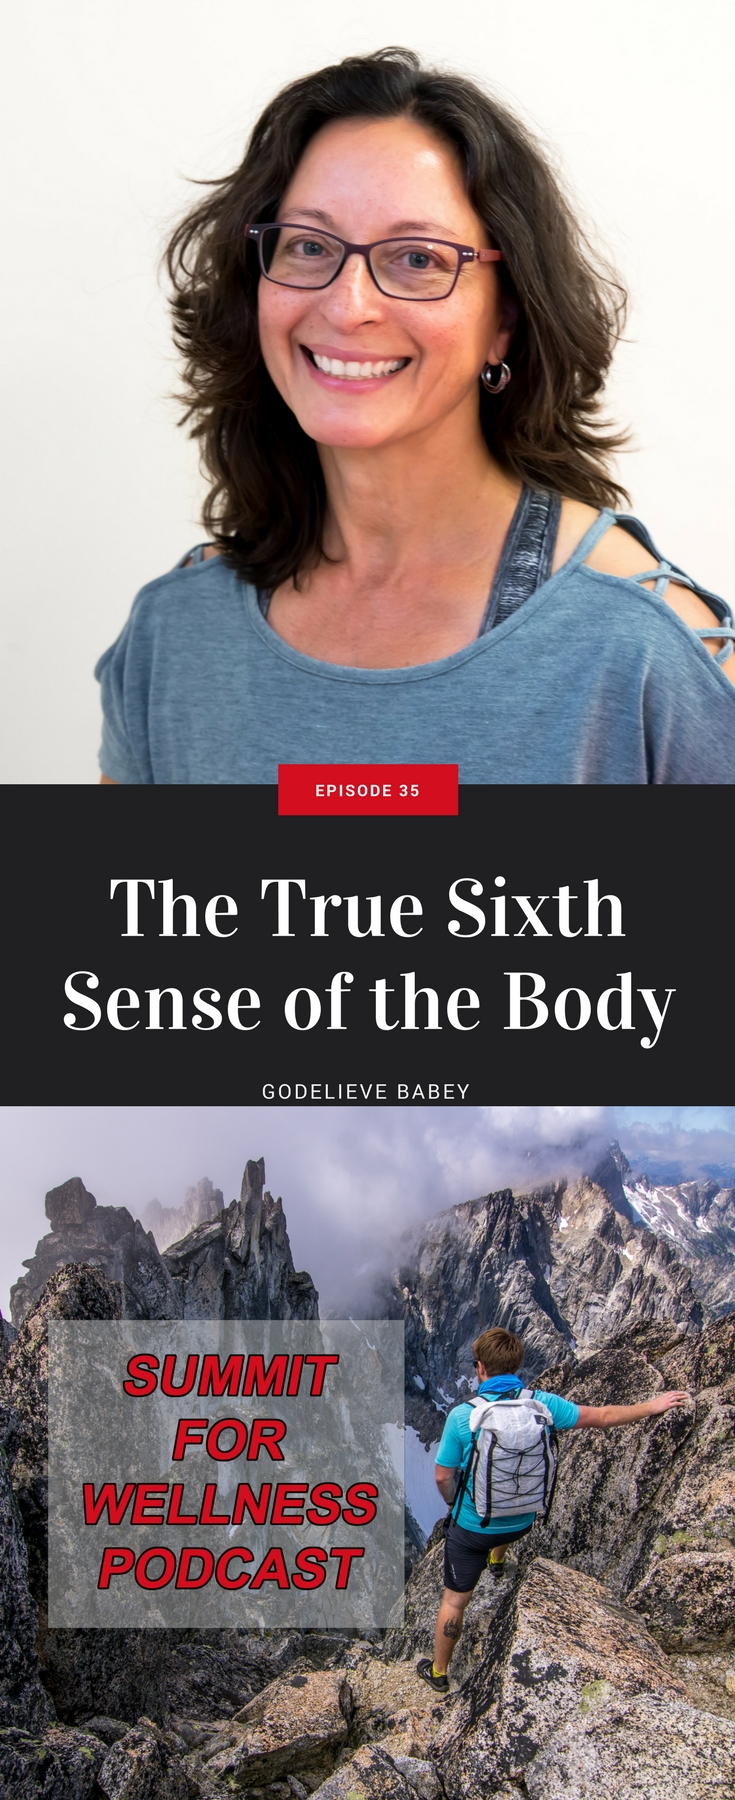 In this episode with Godelieve Babey, we discuss the proprioceptors and how the nervous system plays a role in our movement capabilities